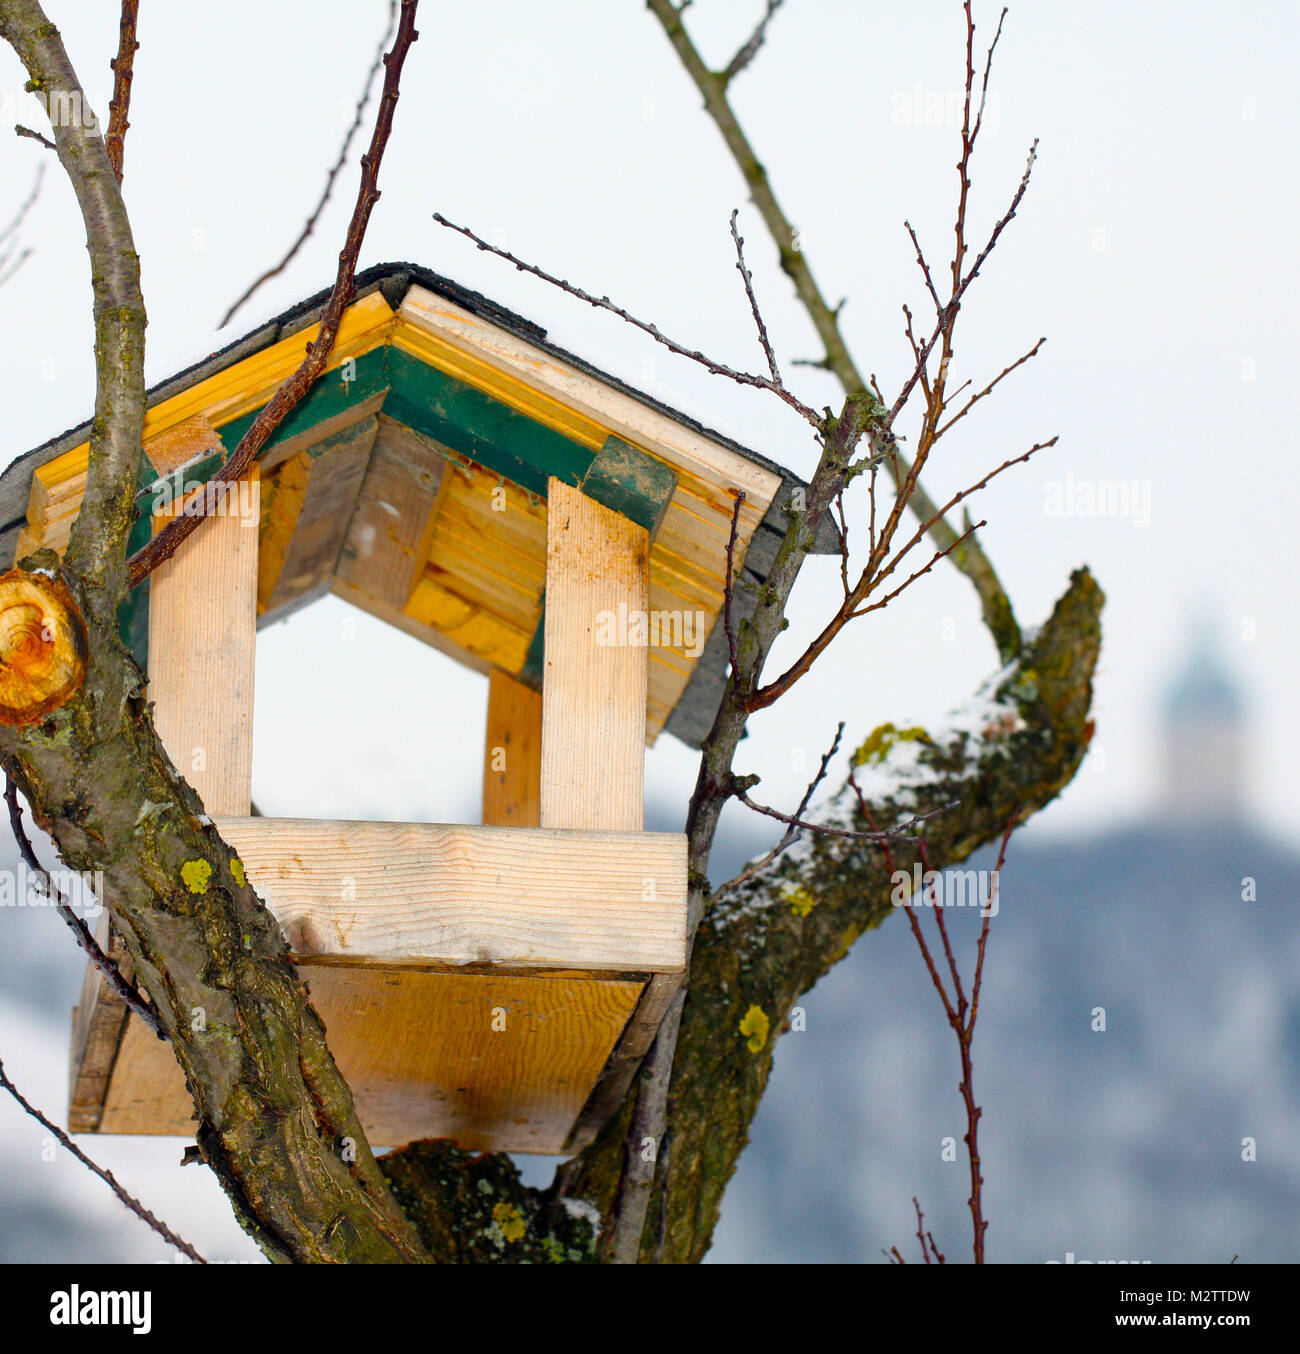 Birdhouse waiting for guests - Stock Image